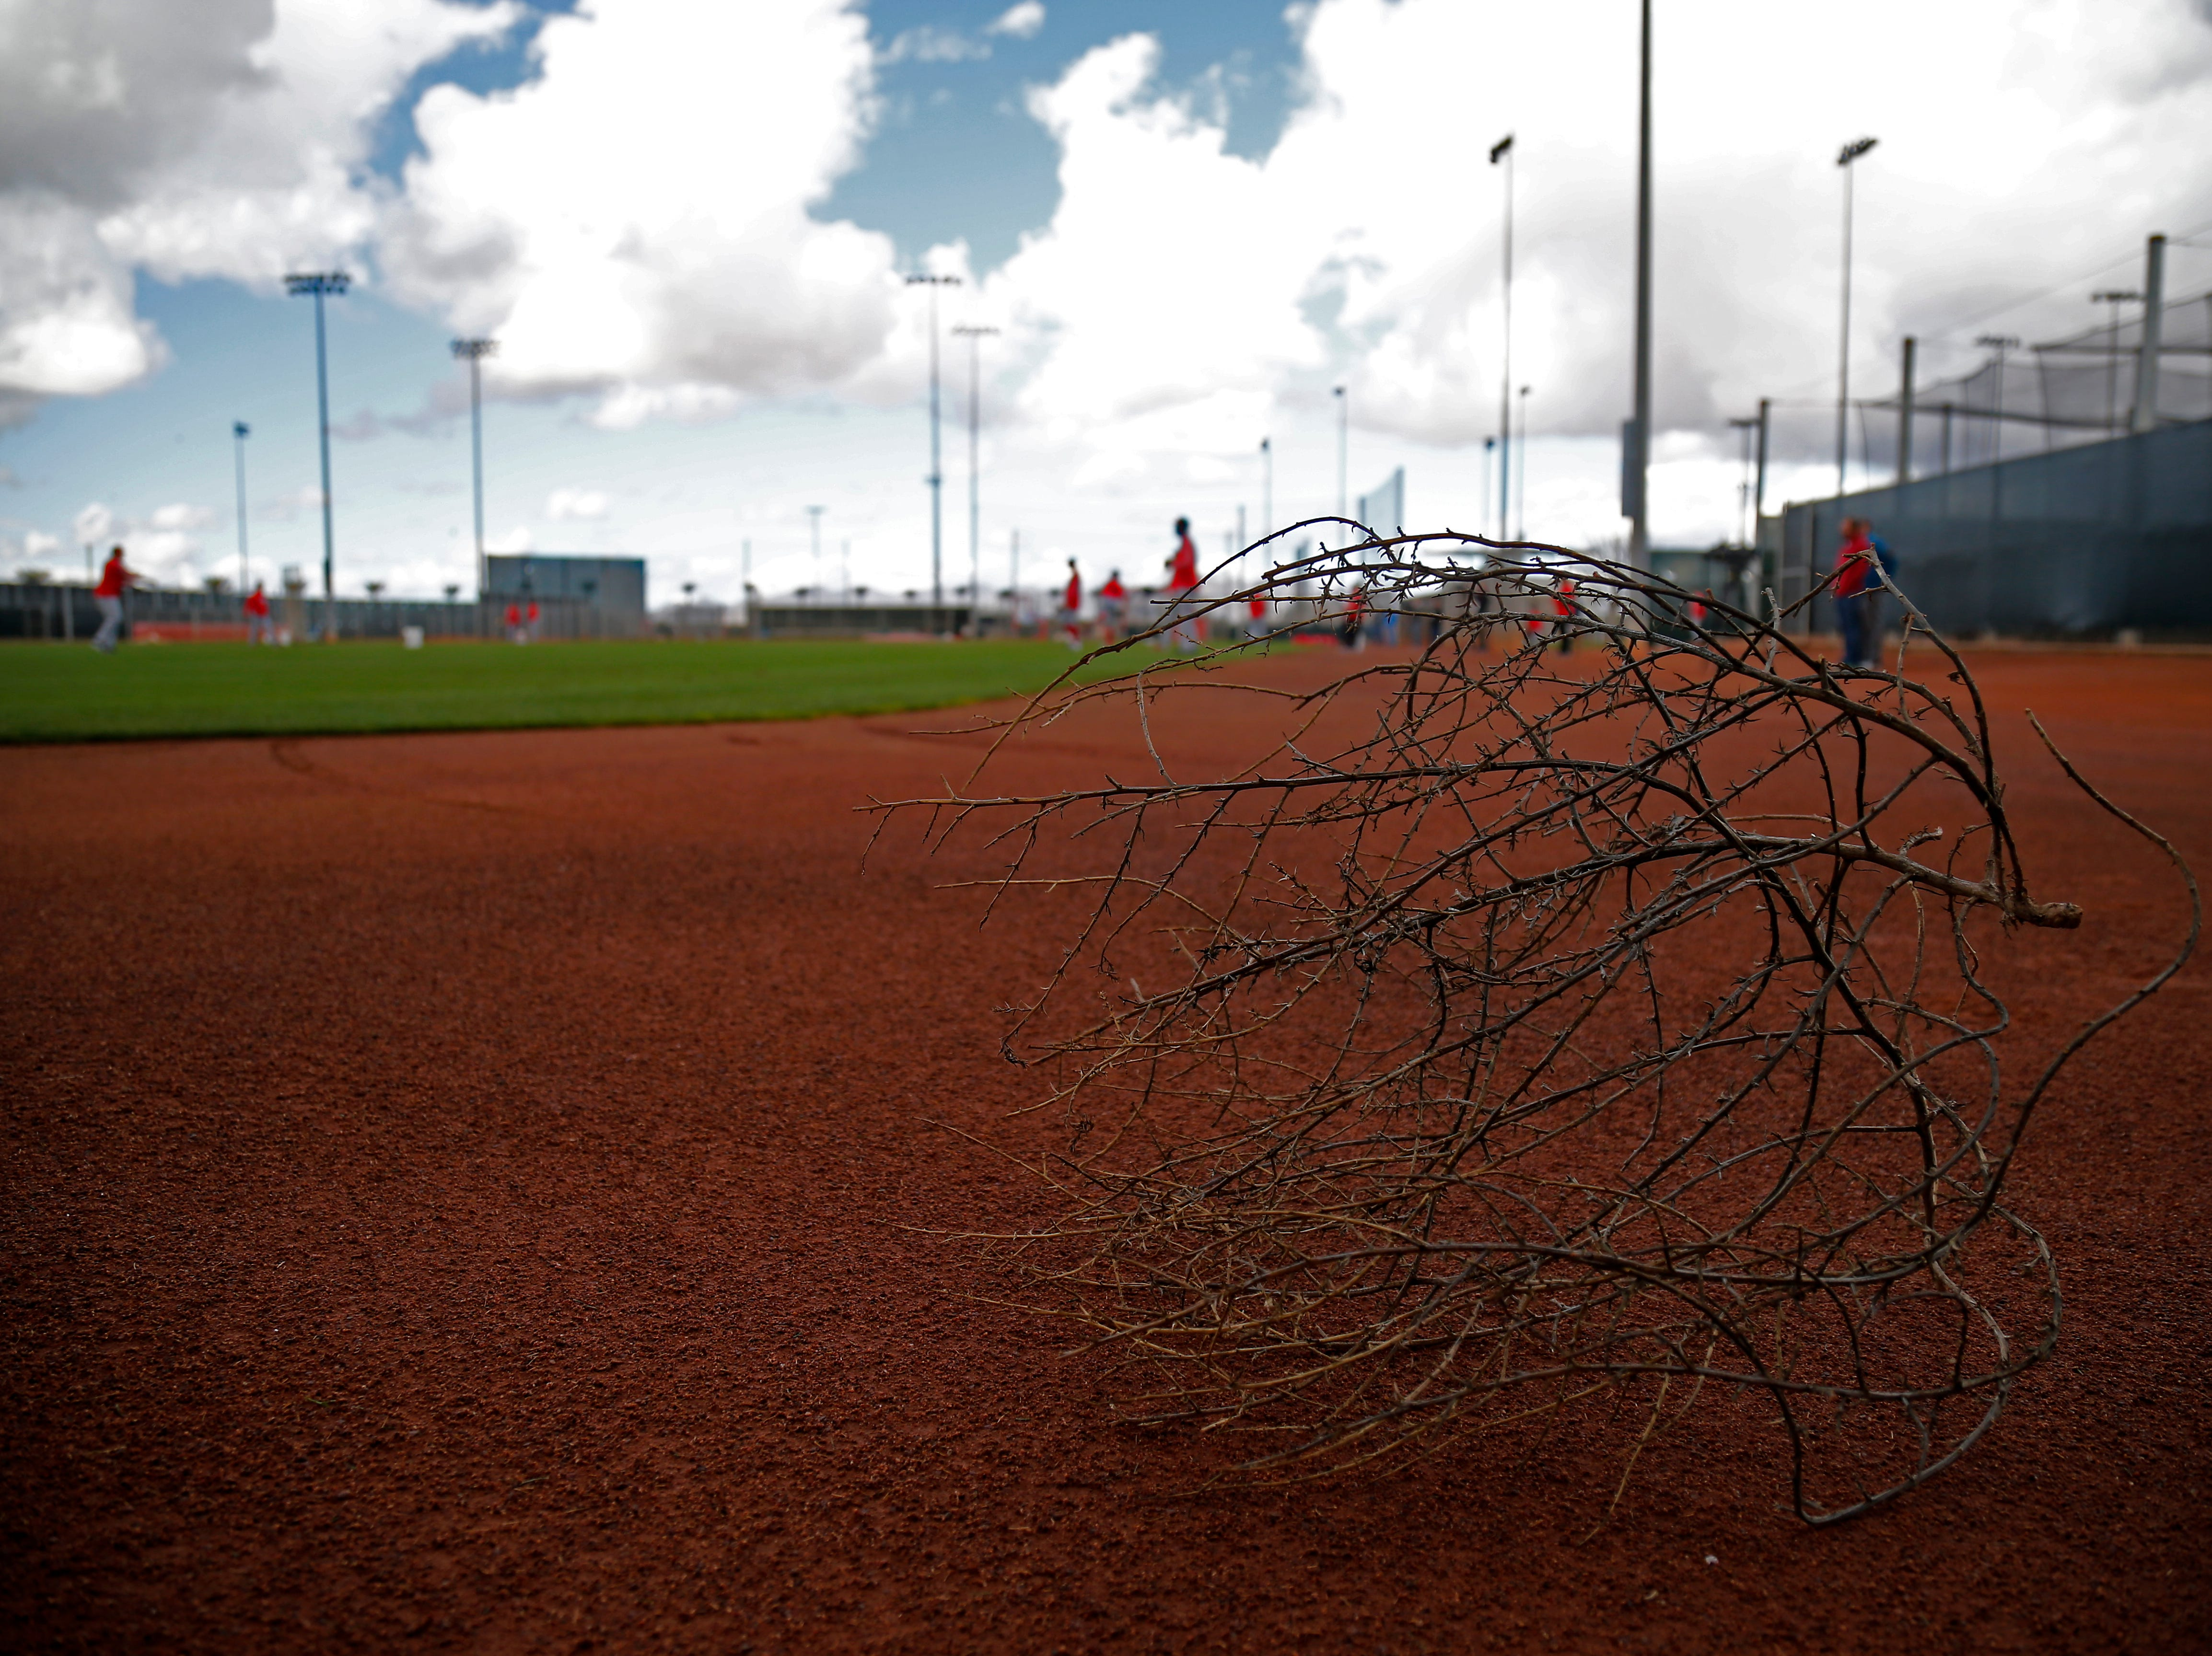 A large tumbleweed comes to a rest in the outfield of a practice field at the Cincinnati Reds spring training facility in Goodyear, Ariz., on Monday, Feb. 18, 2019.